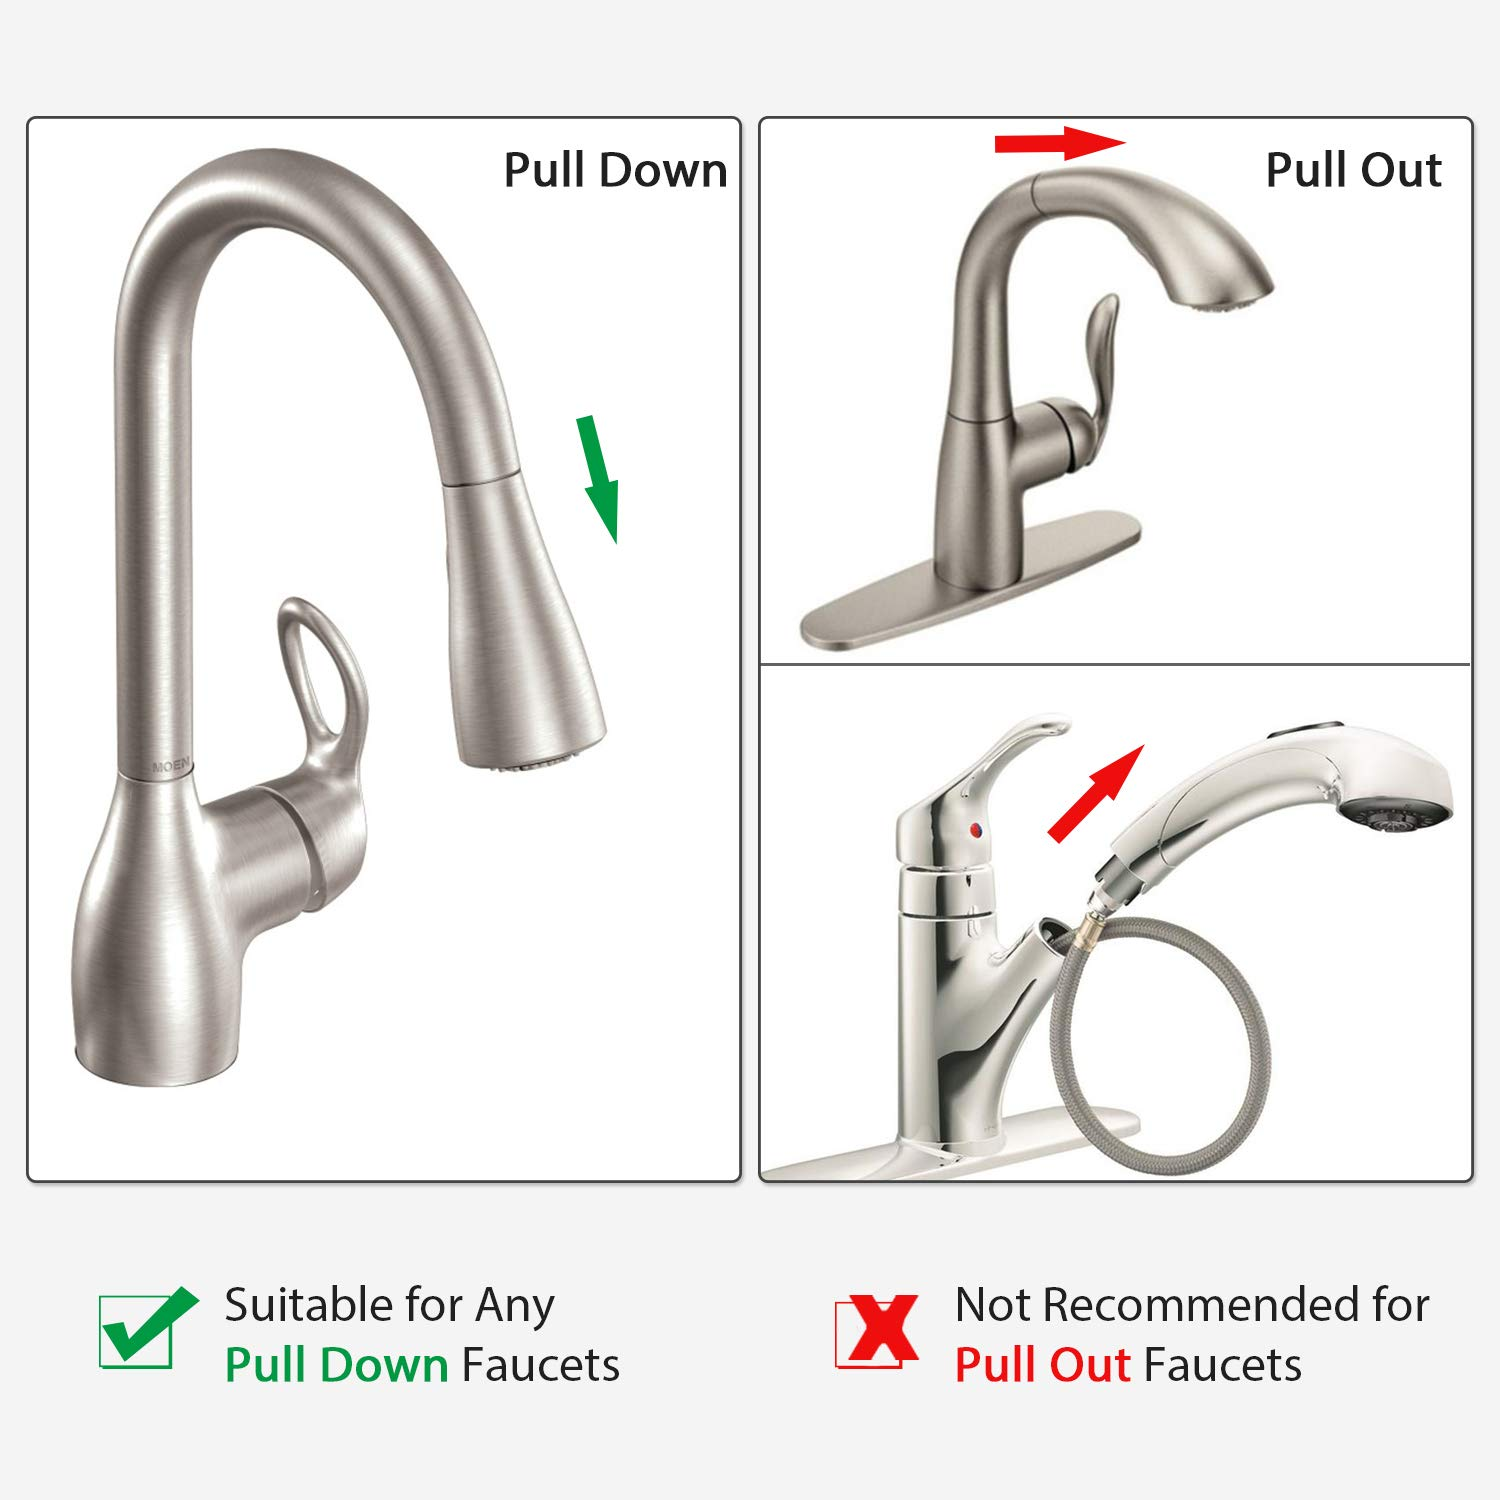 150259 Replacement Hose Kit for Moen Pull Down Kitchen